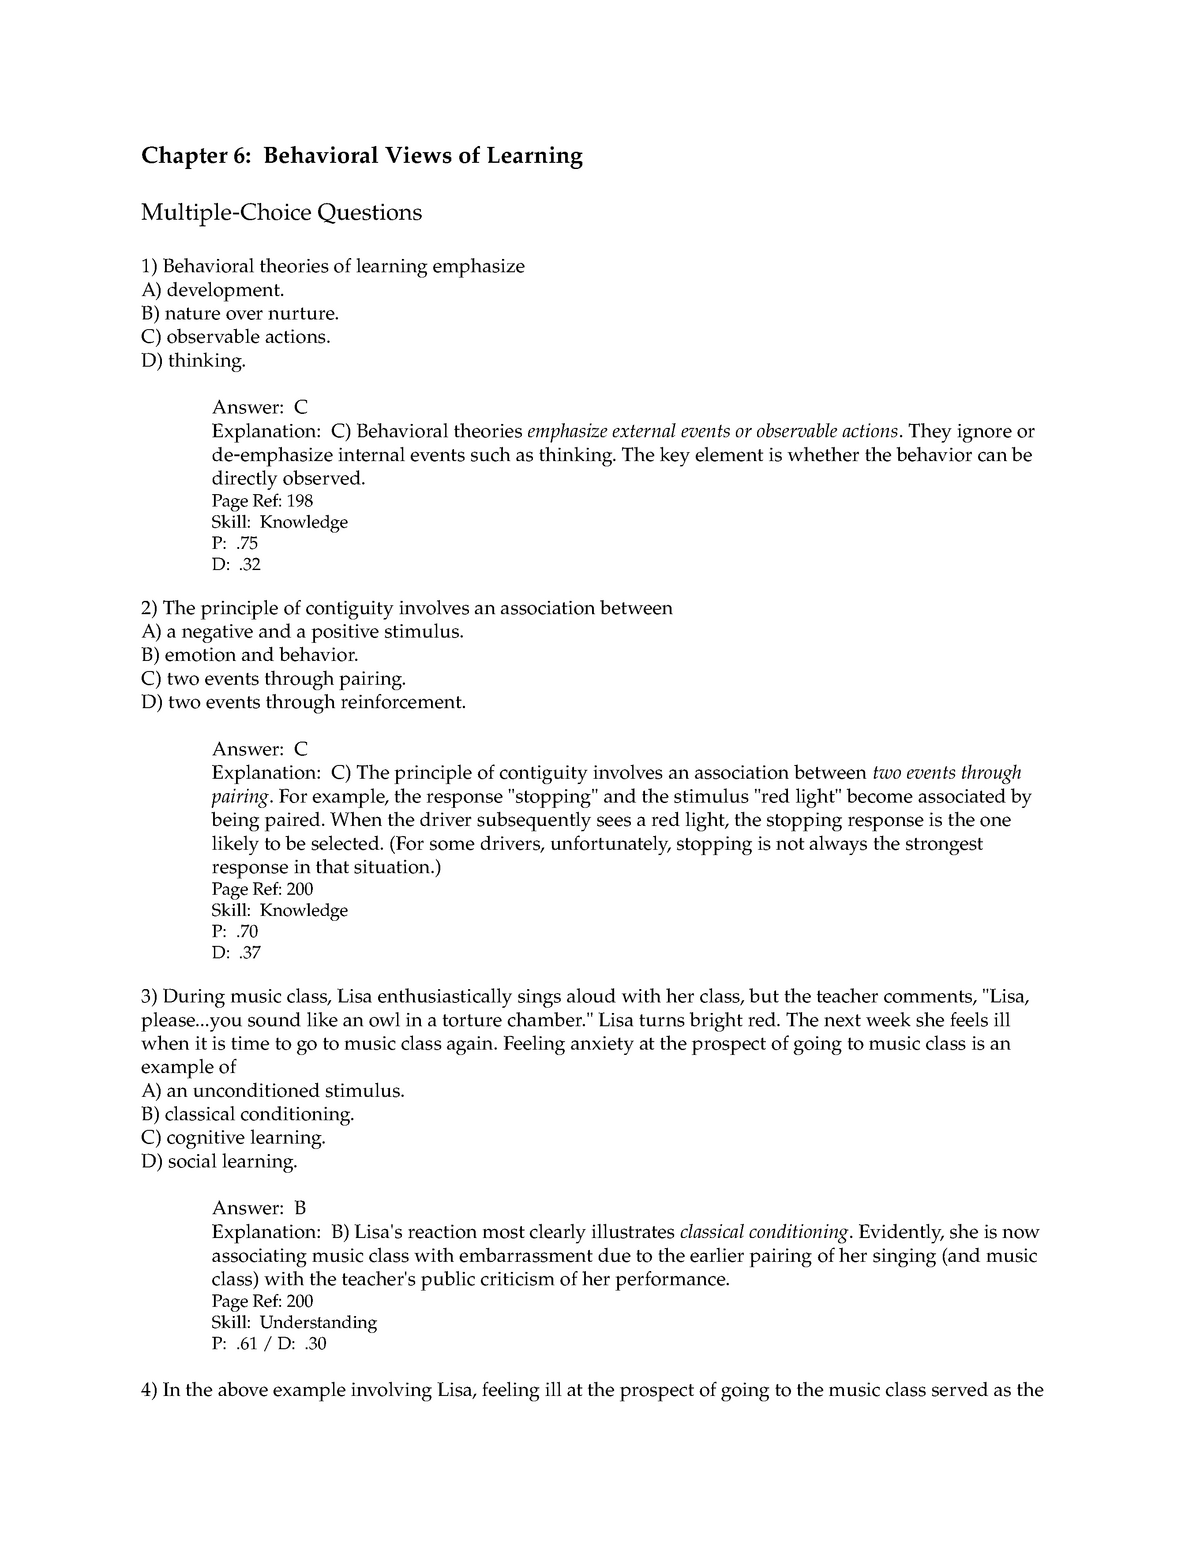 Chapter 6 Practice Questions with answers - StuDocu